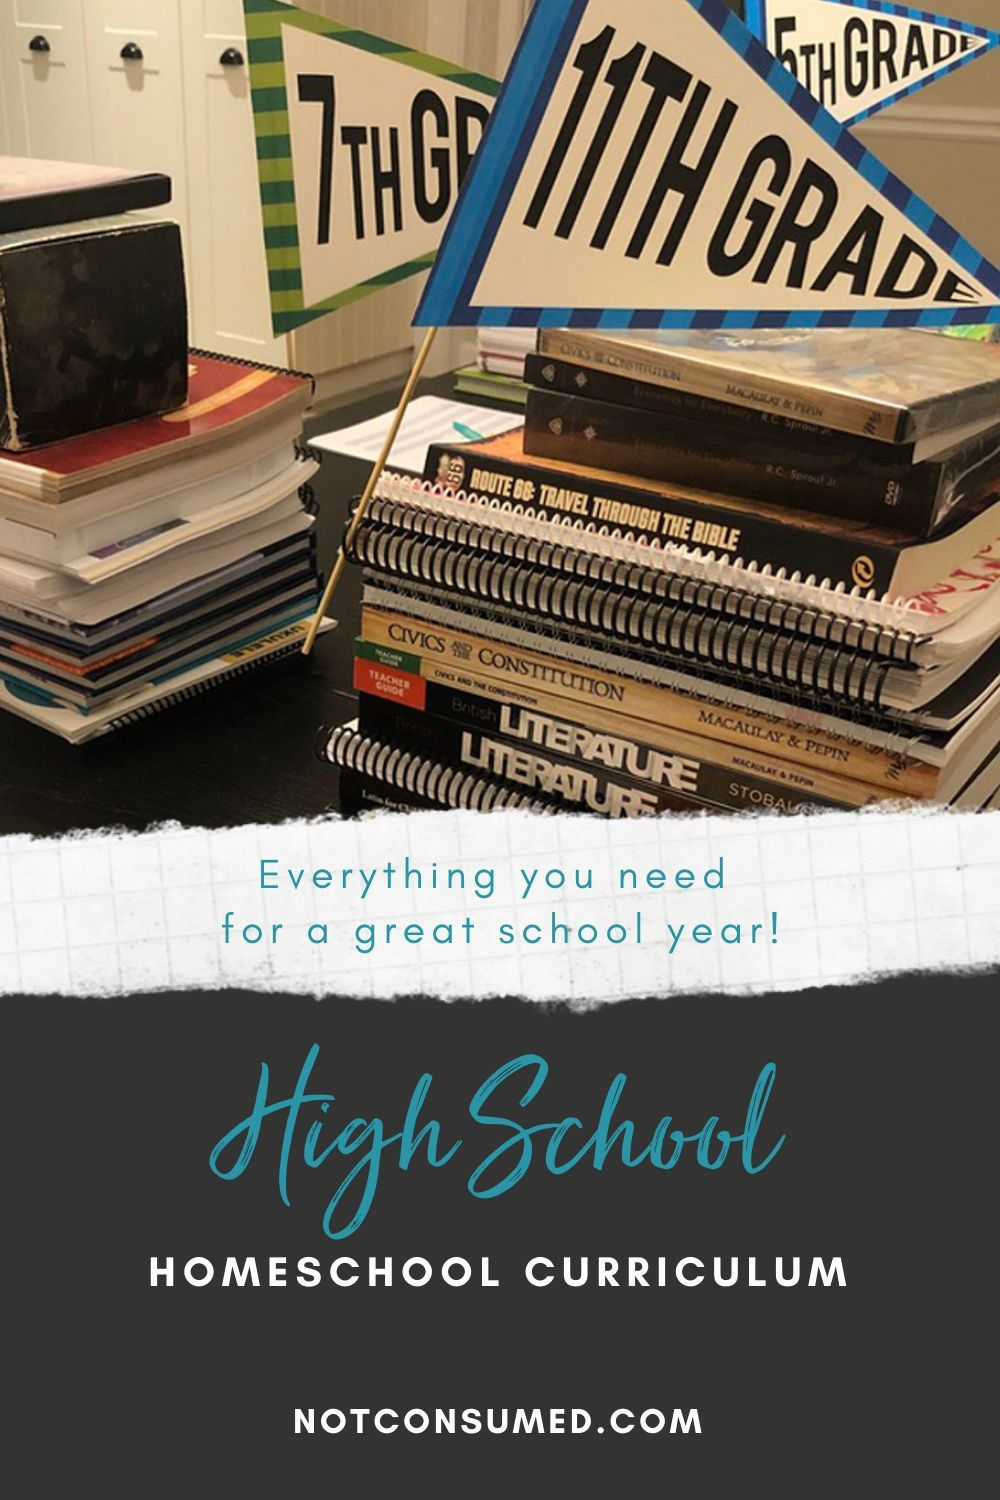 Everything You Need To Know About High School Homeschool Curriculum In 2021 Homeschool High School Curriculum Homeschool High School School Homeschool [ 1500 x 1000 Pixel ]